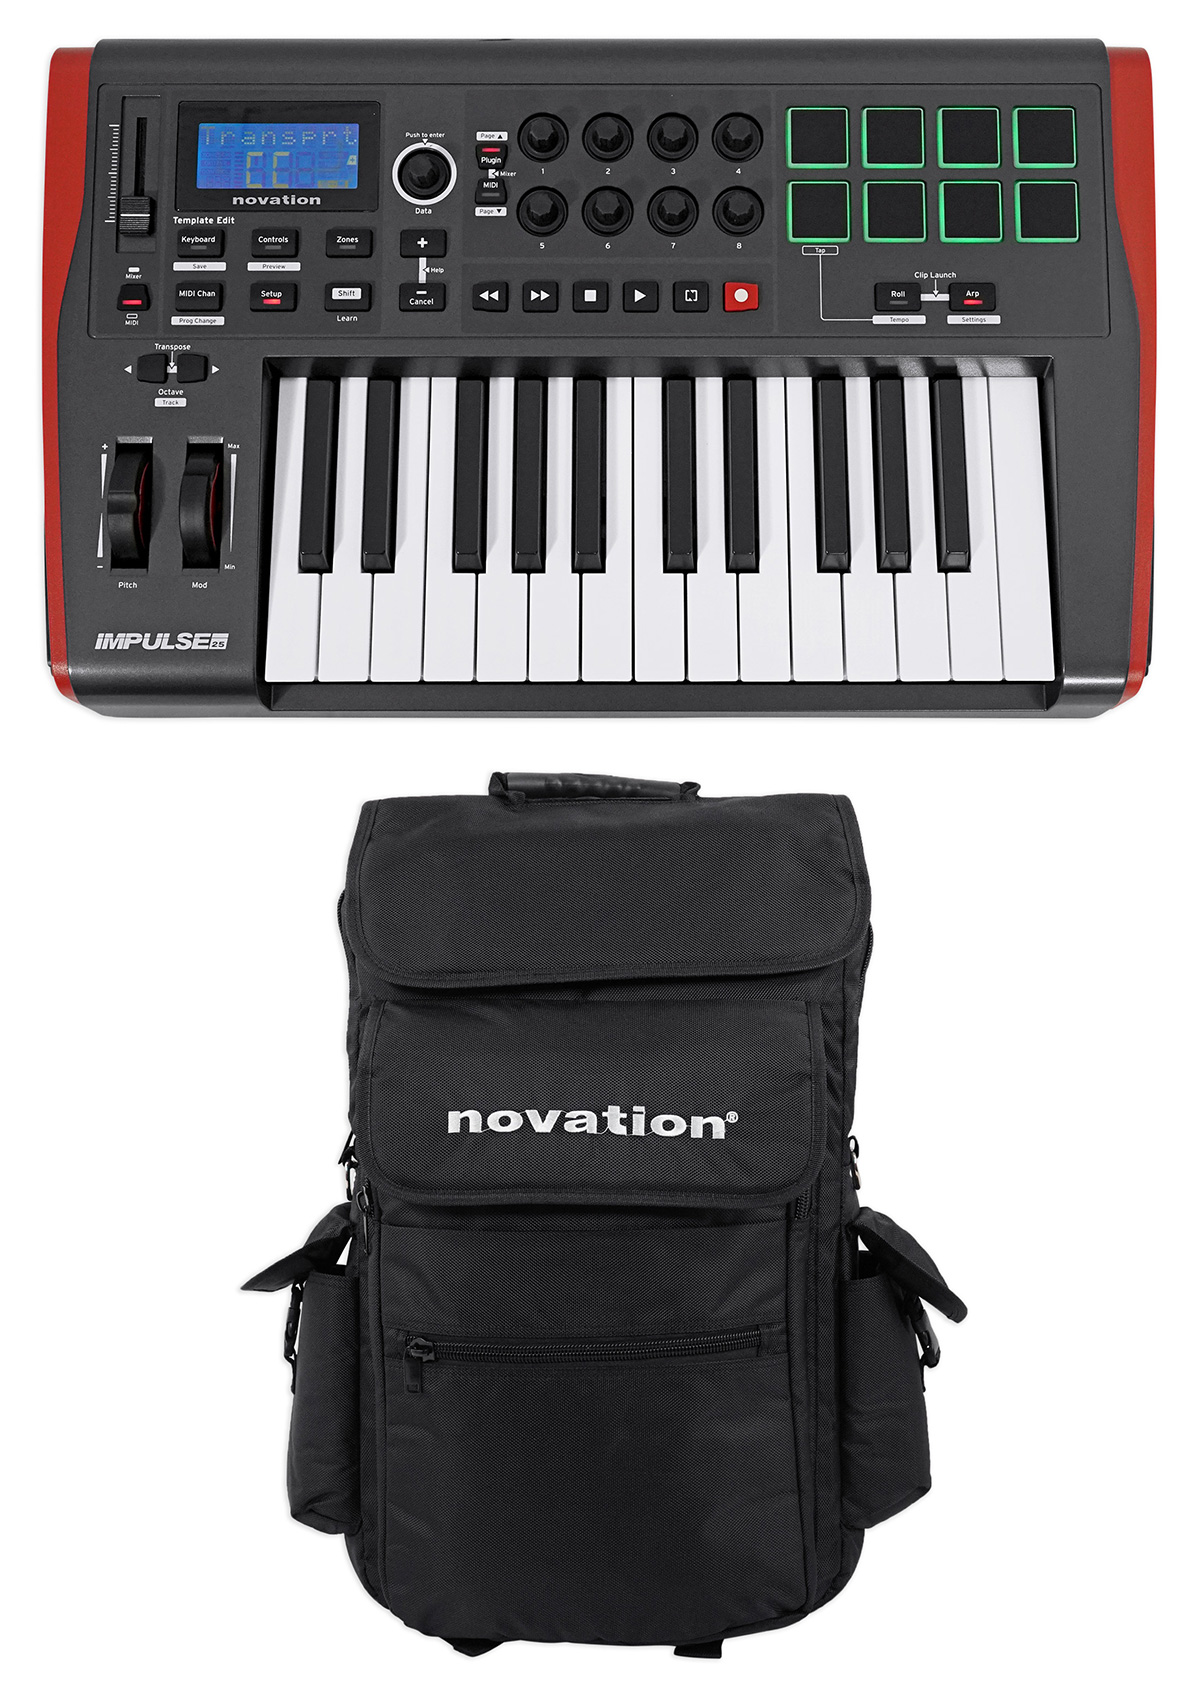 Novation IMPULSE 25 Ableton Live 25-Key MIDI USB Keyboard Controller + Carry Bag by NOVATION